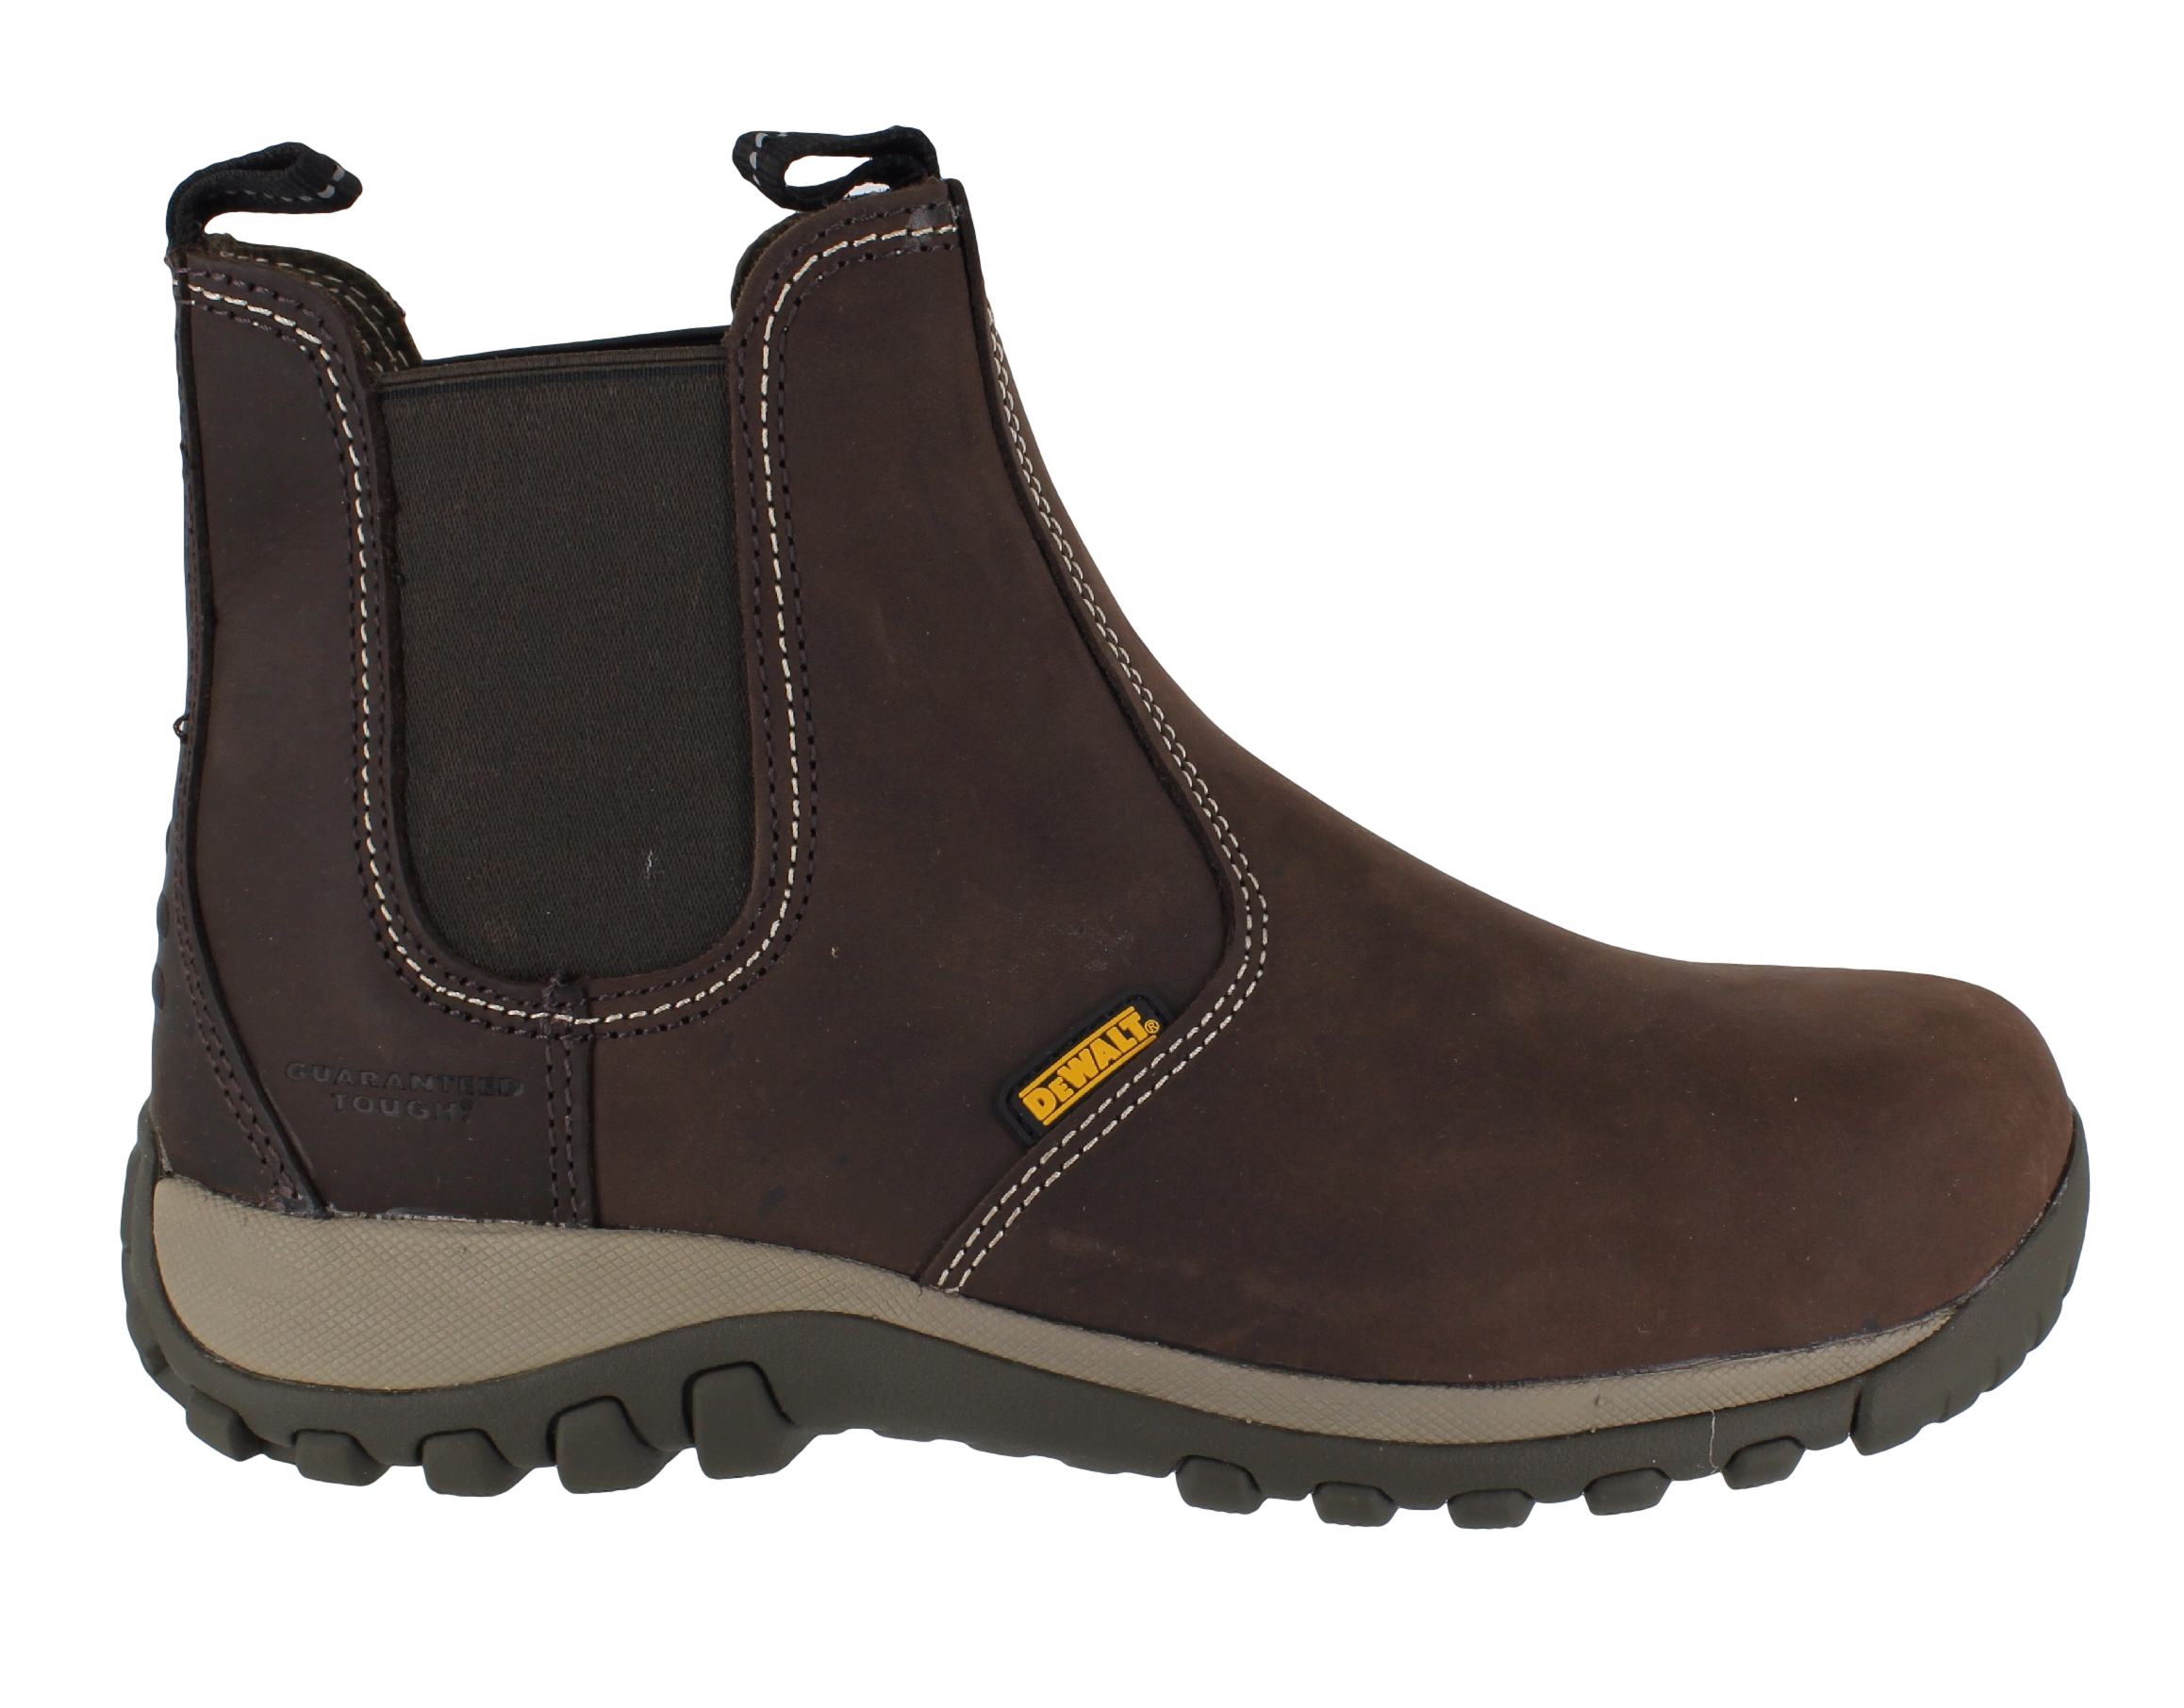 454440574b6 Mens DeWalt Radial Steel Toe SBP Safety Dealer Slip On Work Boots Sizes 6  to 12